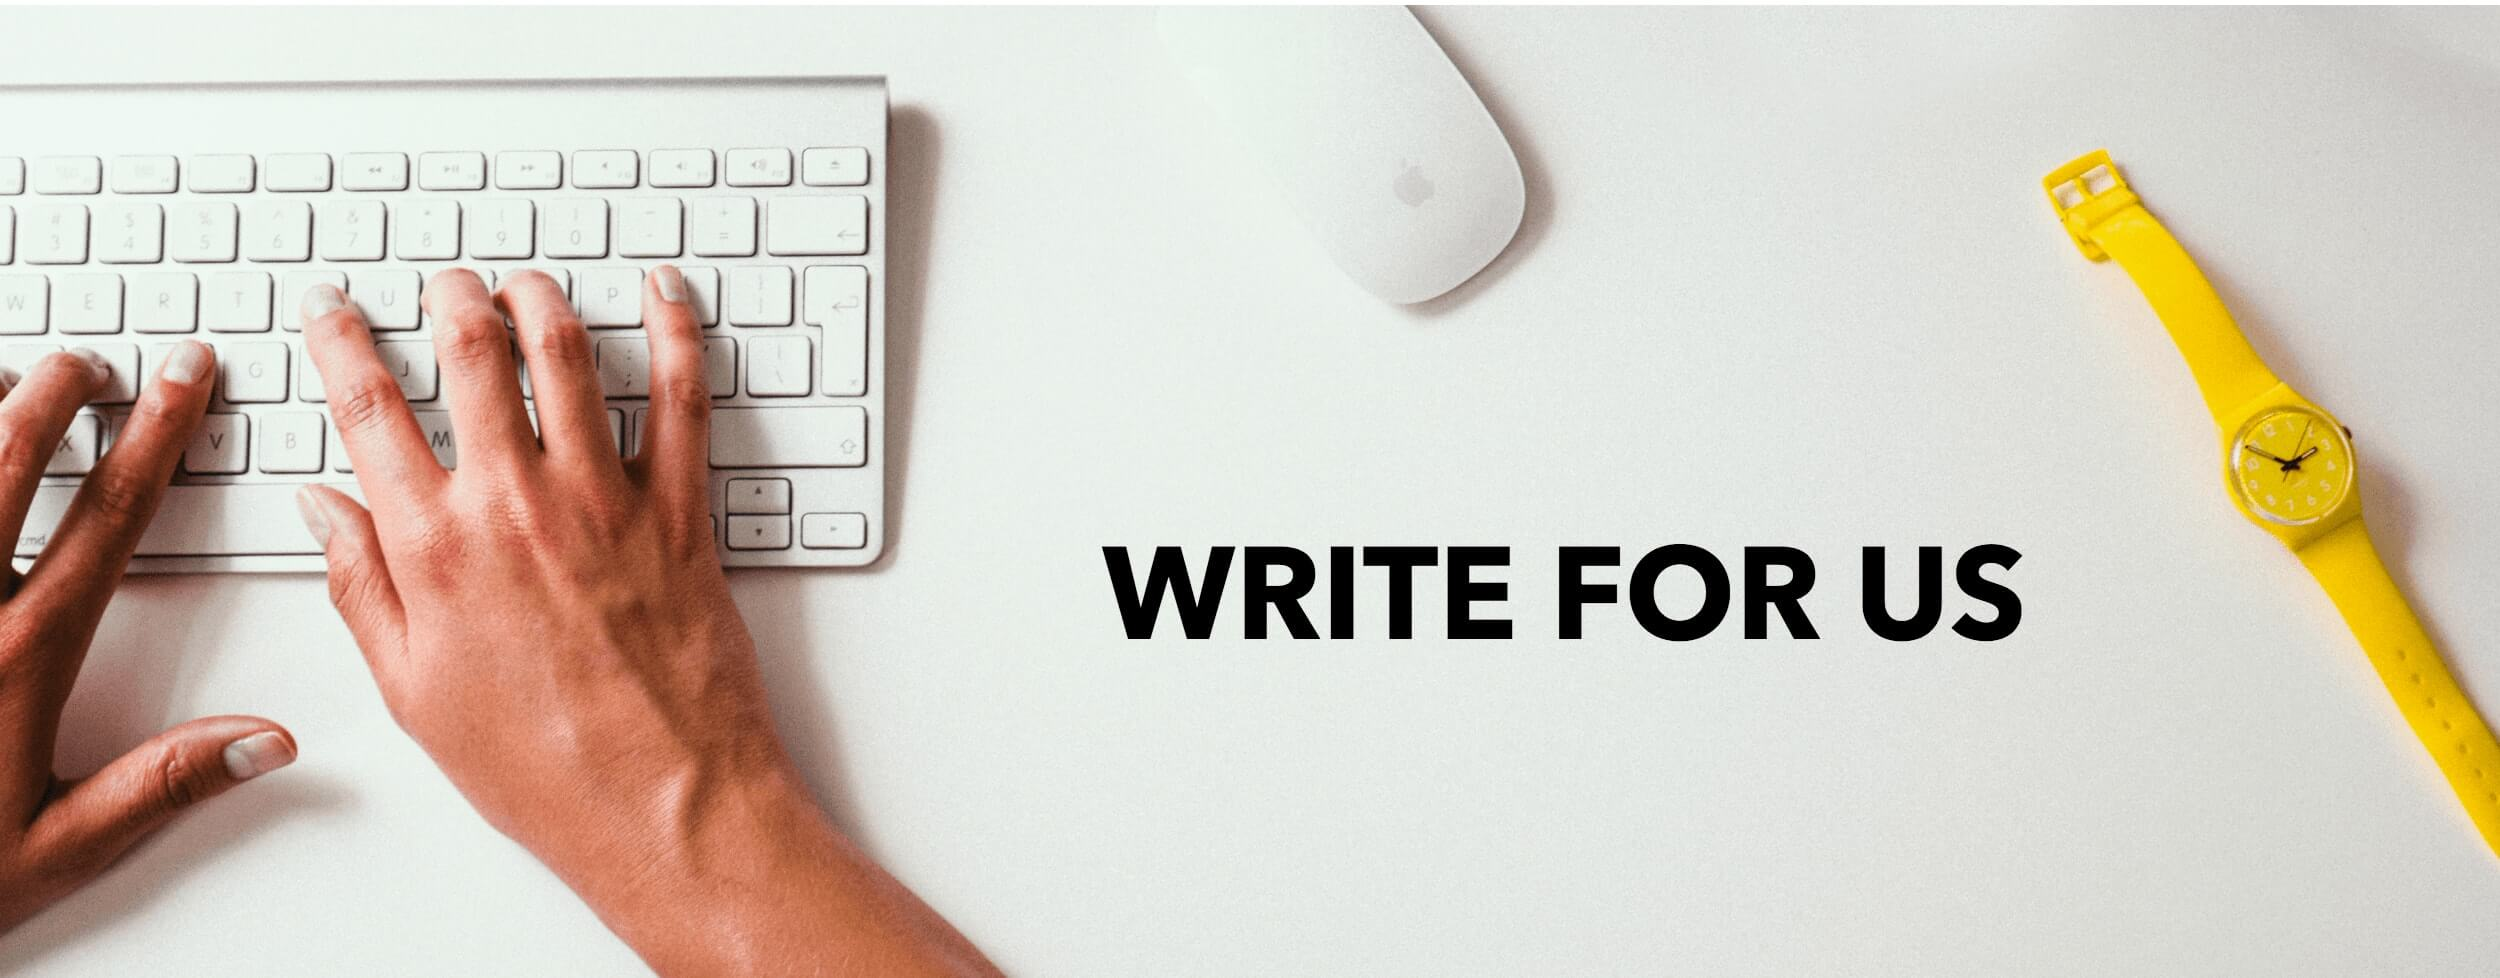 Write for us, looking for contributors, FENewsNet